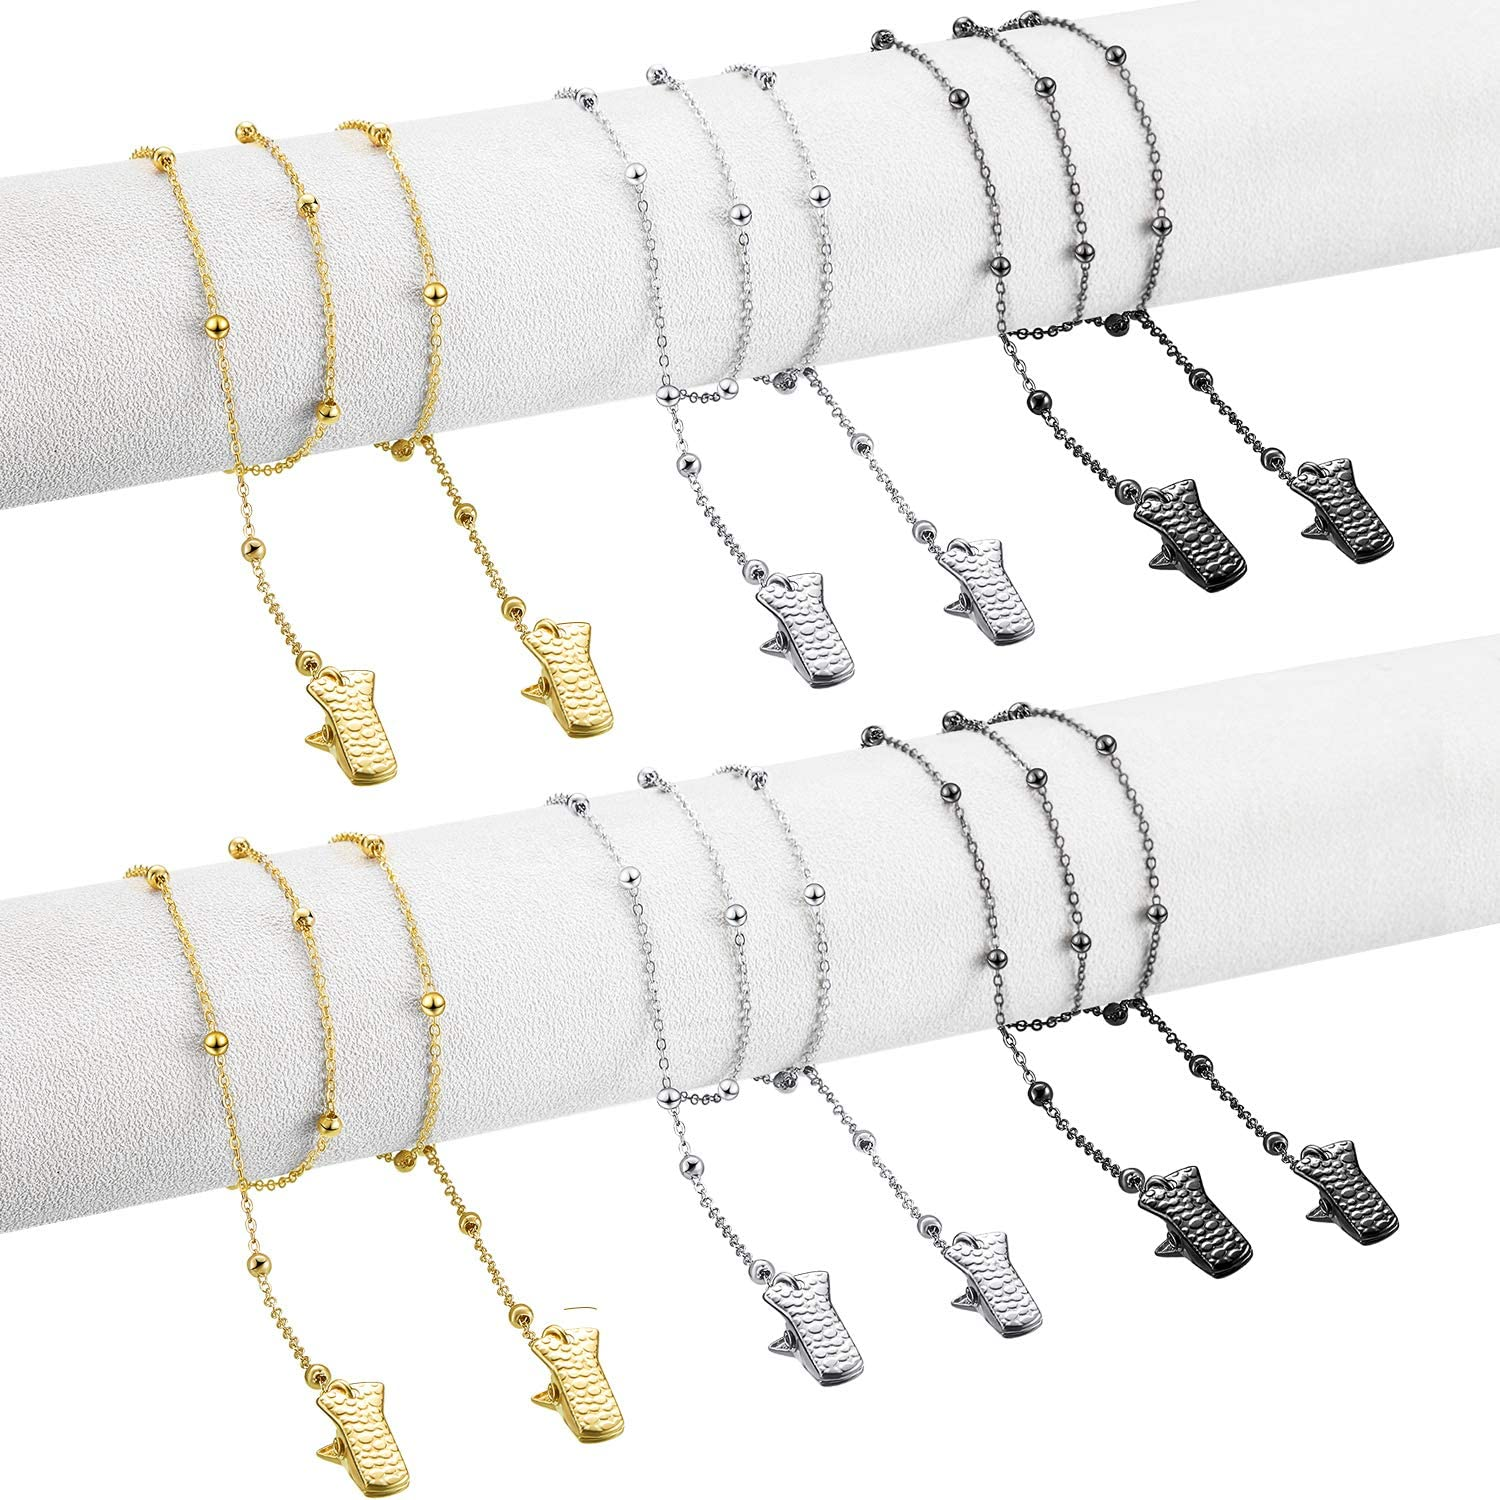 Face Cover Holder Chain Necklace Strap Metal Glasses Chain, 28 I